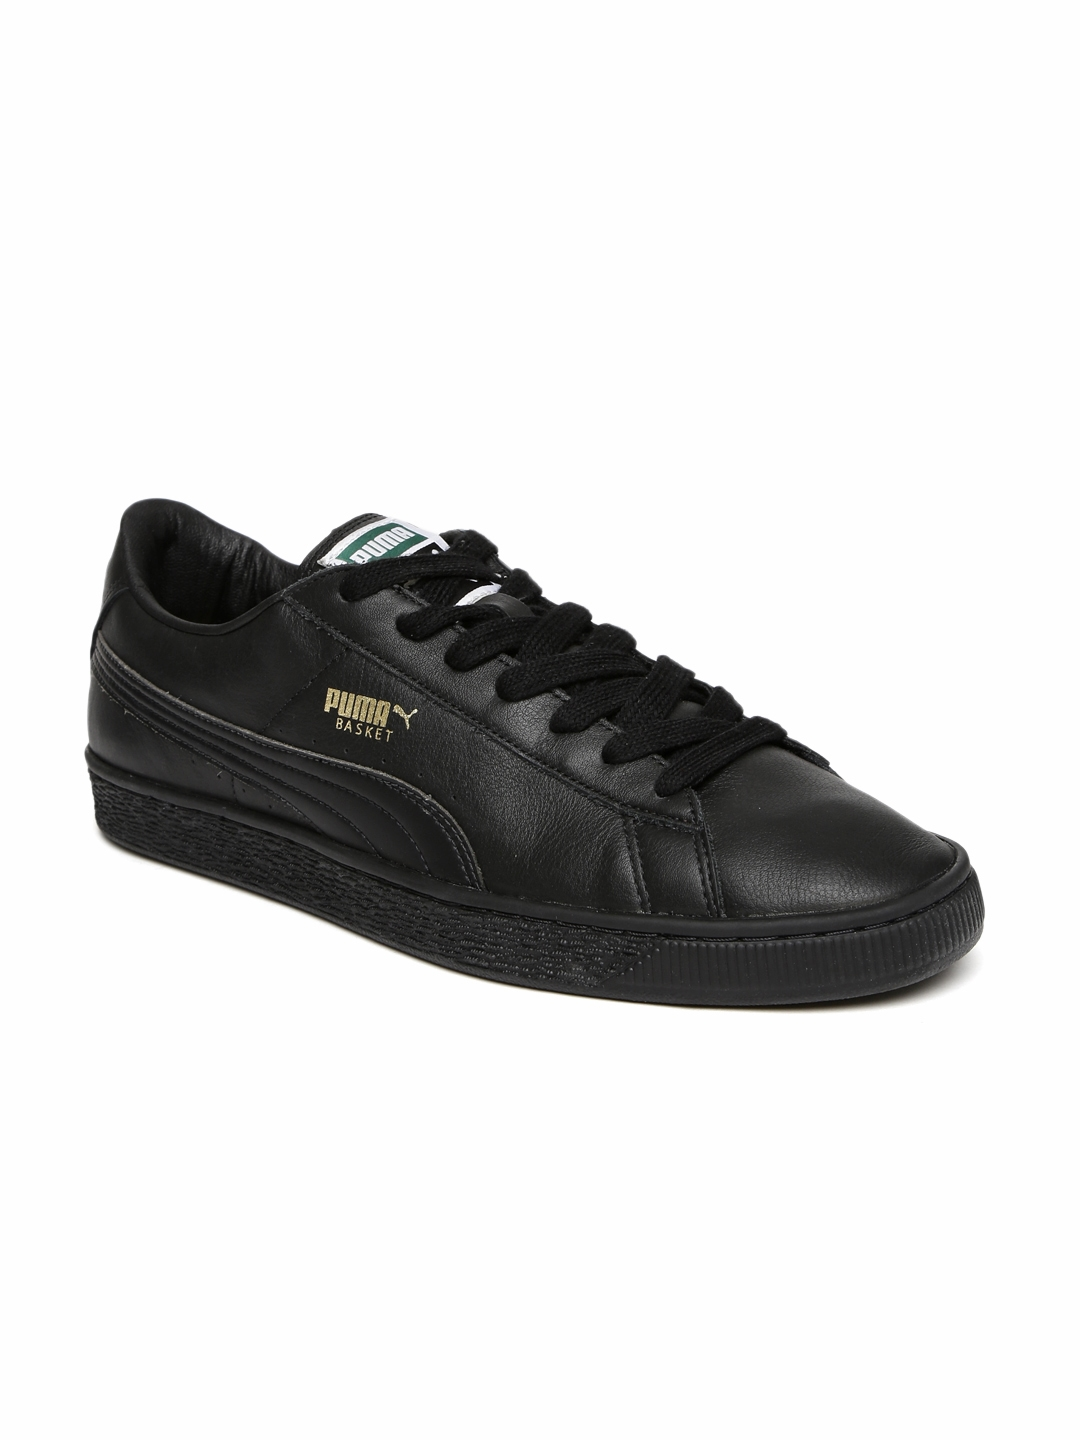 aad959a3233d Buy Puma Men Black Basket Classic LFS Sneakers - Casual Shoes for ...